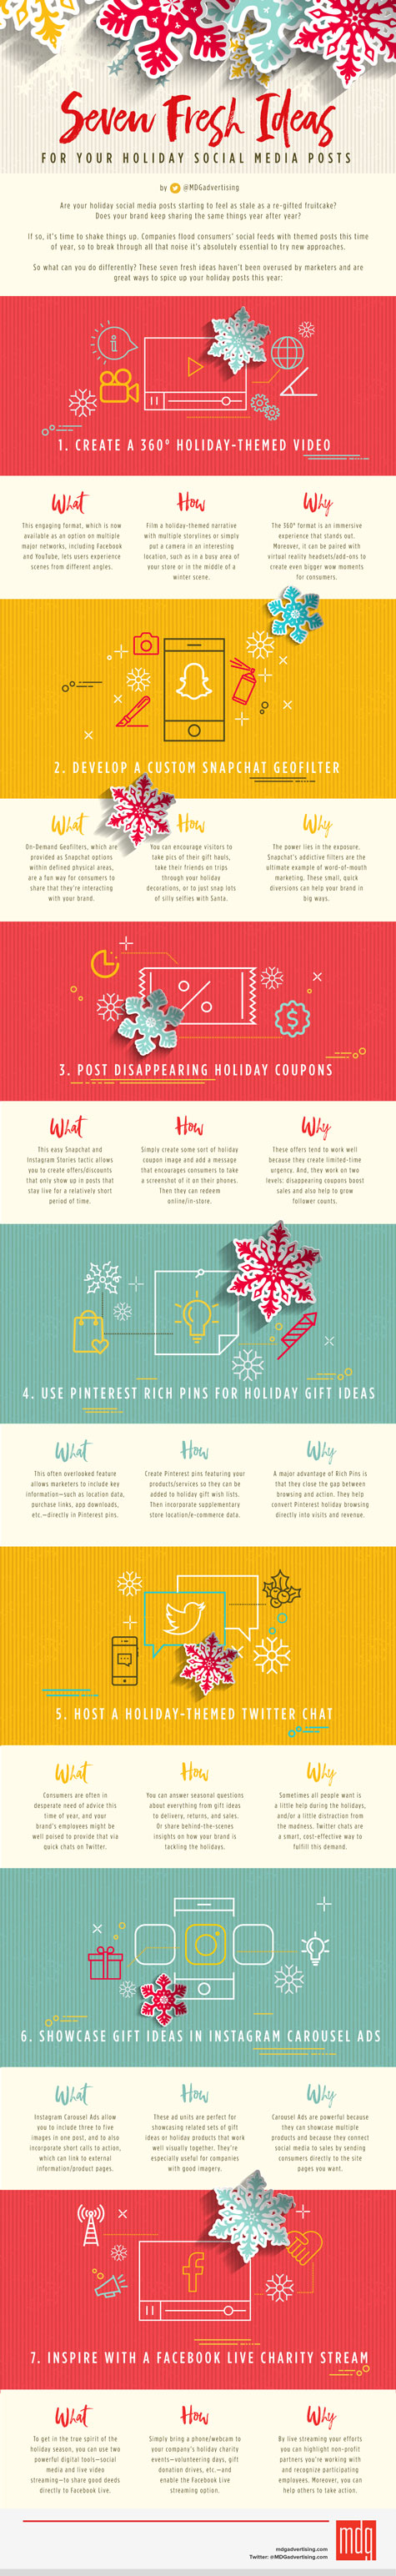 7 Creative Holiday Social Strategies [Infographic]